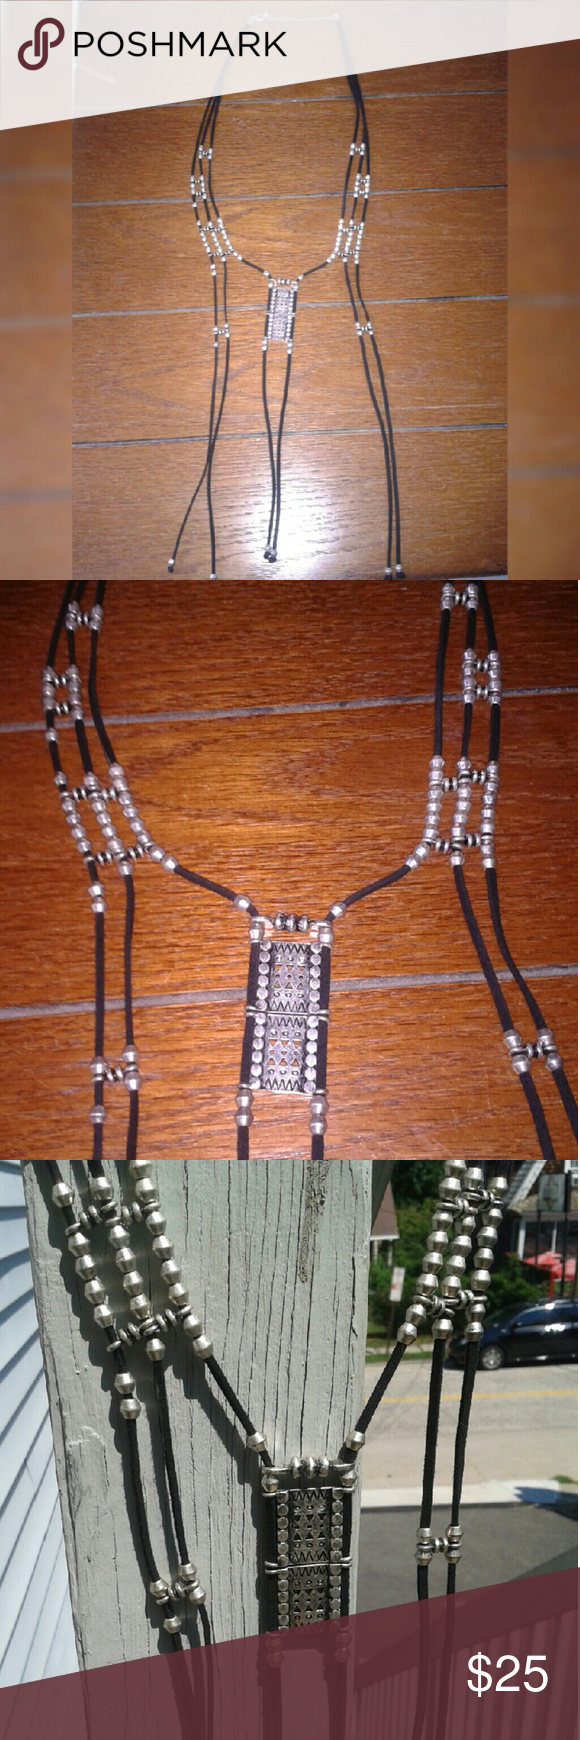 Free People Long Tribal Necklace Long Necklace with Black Suede and Silver Beading. Adjustable clasp at neck. Really beautiful and adds dimension to any outfit. Very Bohemian. Free People Jewelry Necklaces